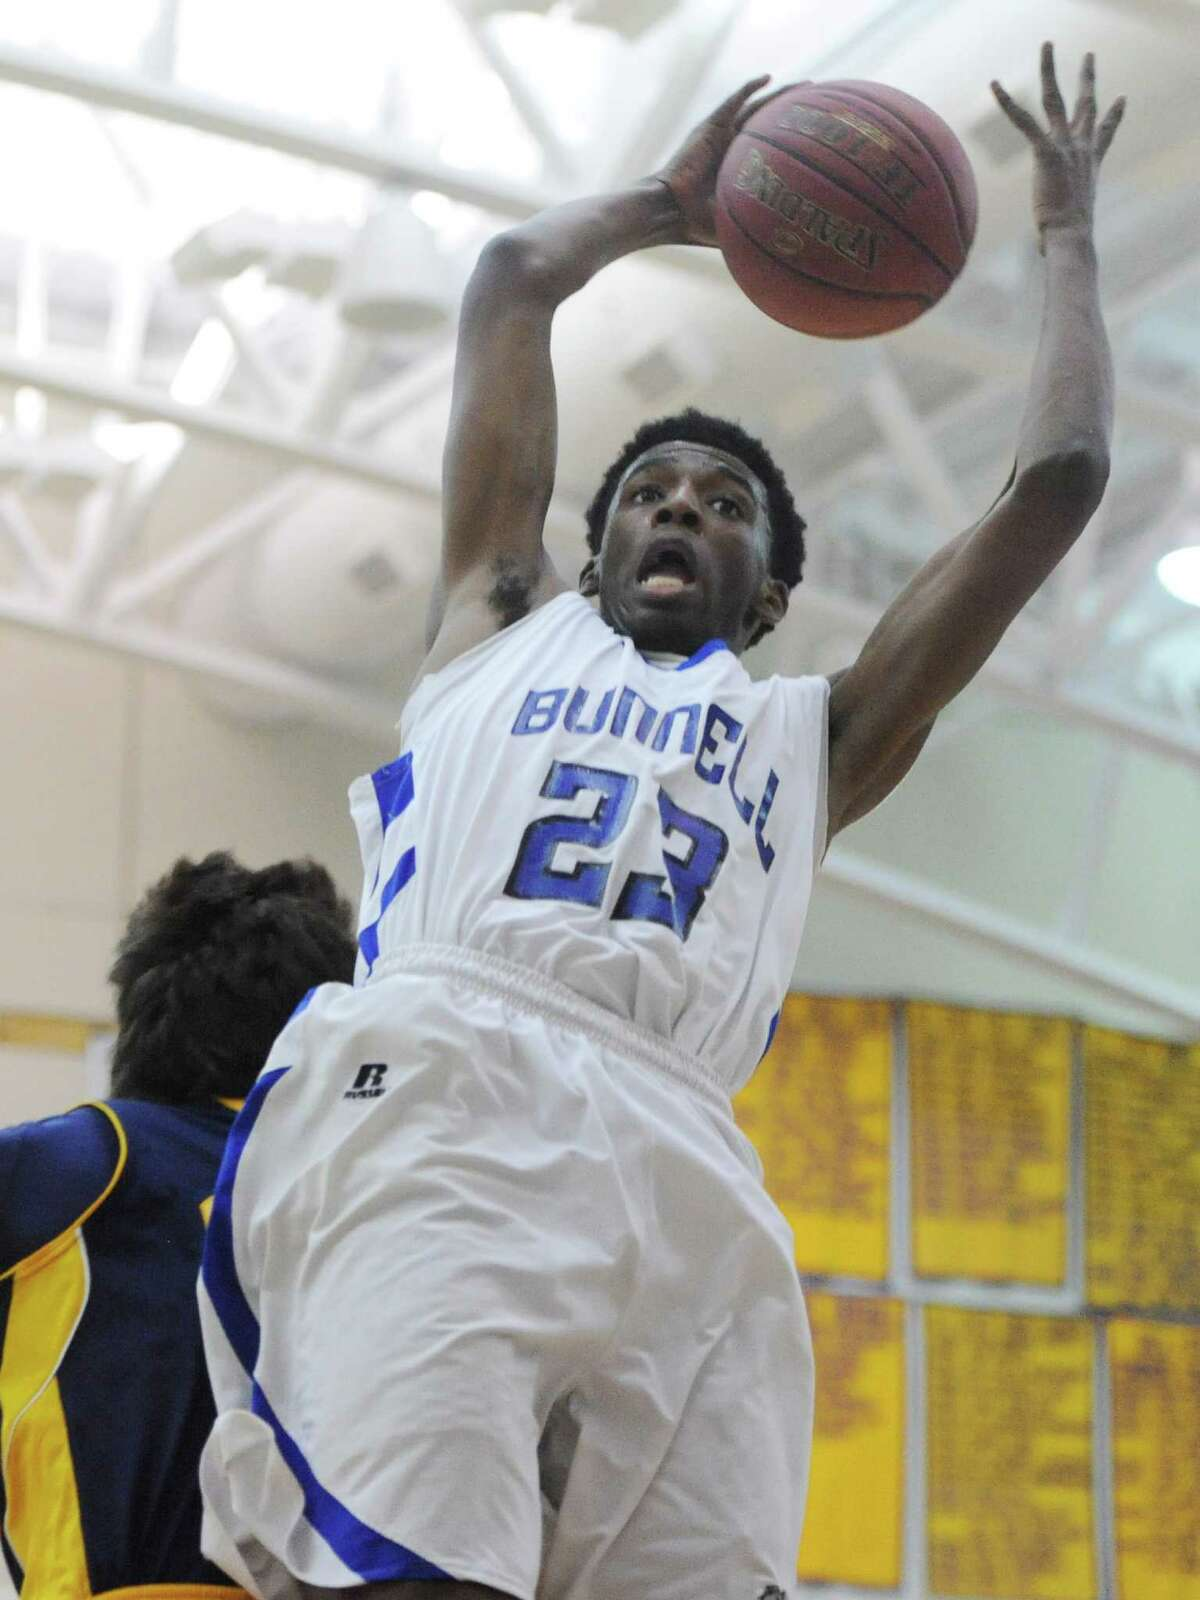 Bunnell's Issac Vann (23) grabs a rebound in No. 2 Bunnell's 46-45 overtime win over No. 3 Weston in the SWC boys basketball semifinal game at Newtown High School in Newtown, Conn. Tuesday, March 4, 2014.